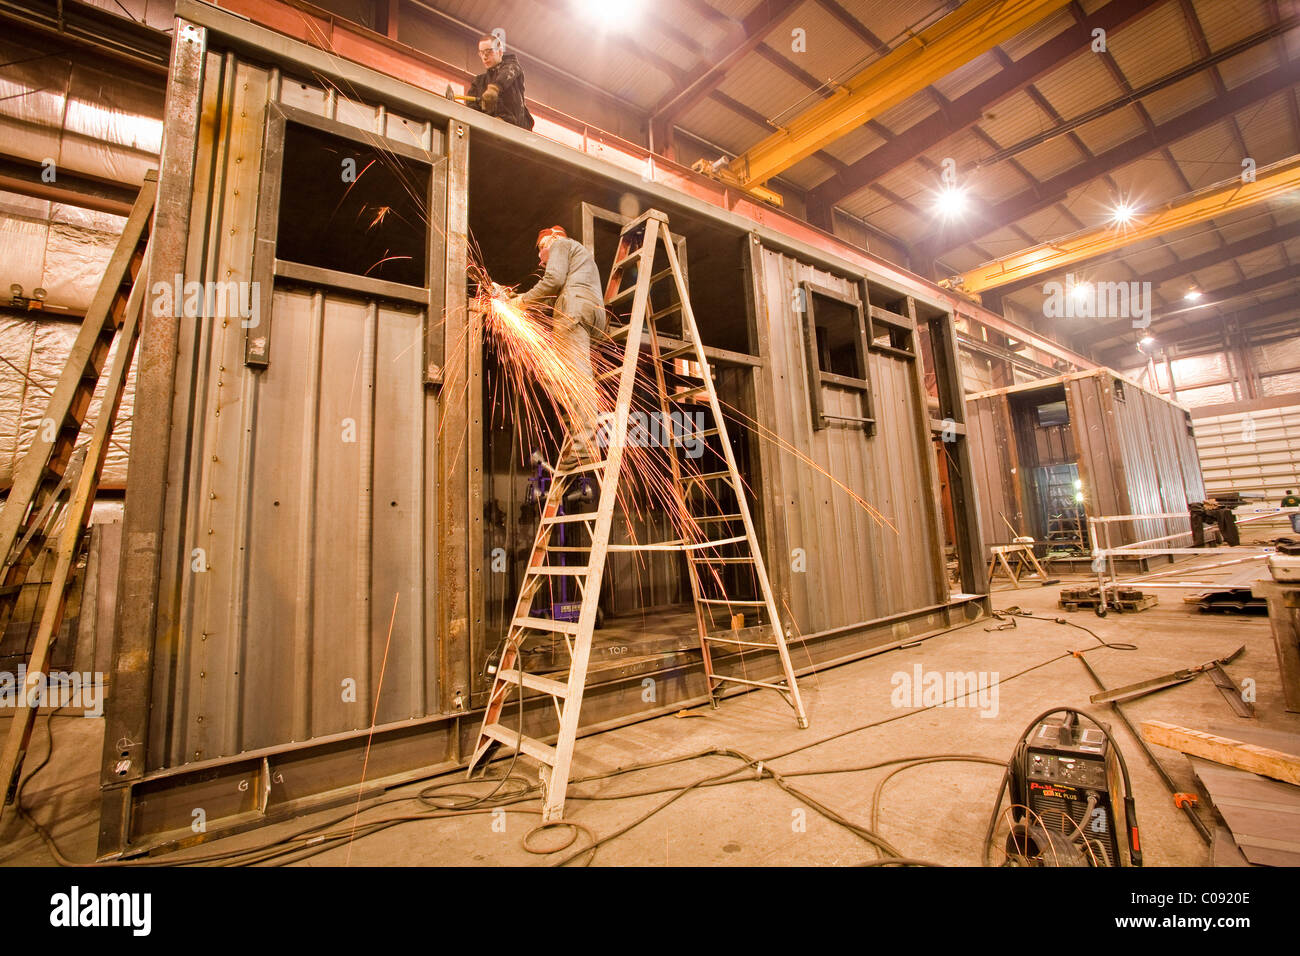 Welders working on a steel fabrictaion structure at Steelfab in Anchorage, Southcentral Alaska, Winter - Stock Image